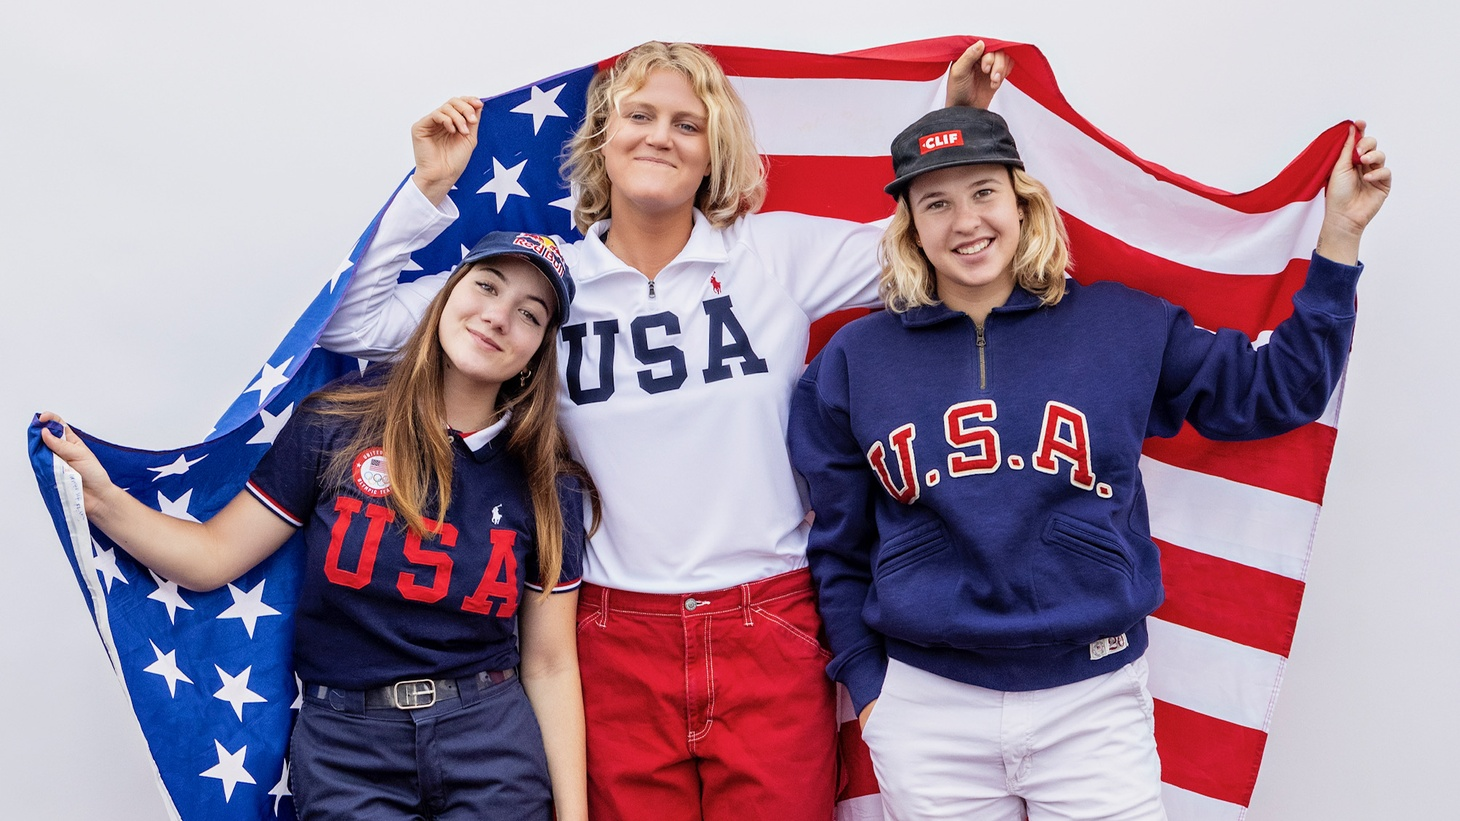 """""""It's actually almost craftsmanship,"""" said skateboarder Bryce Wettstein (center). """"How do we all work together to make that craftsmanship into the most beautiful sandcastle everyone can see?"""" She poses with her teammates Brighton Zeuner and Jordyn Barratt, who are childhood skateboard friends as well as competitors."""